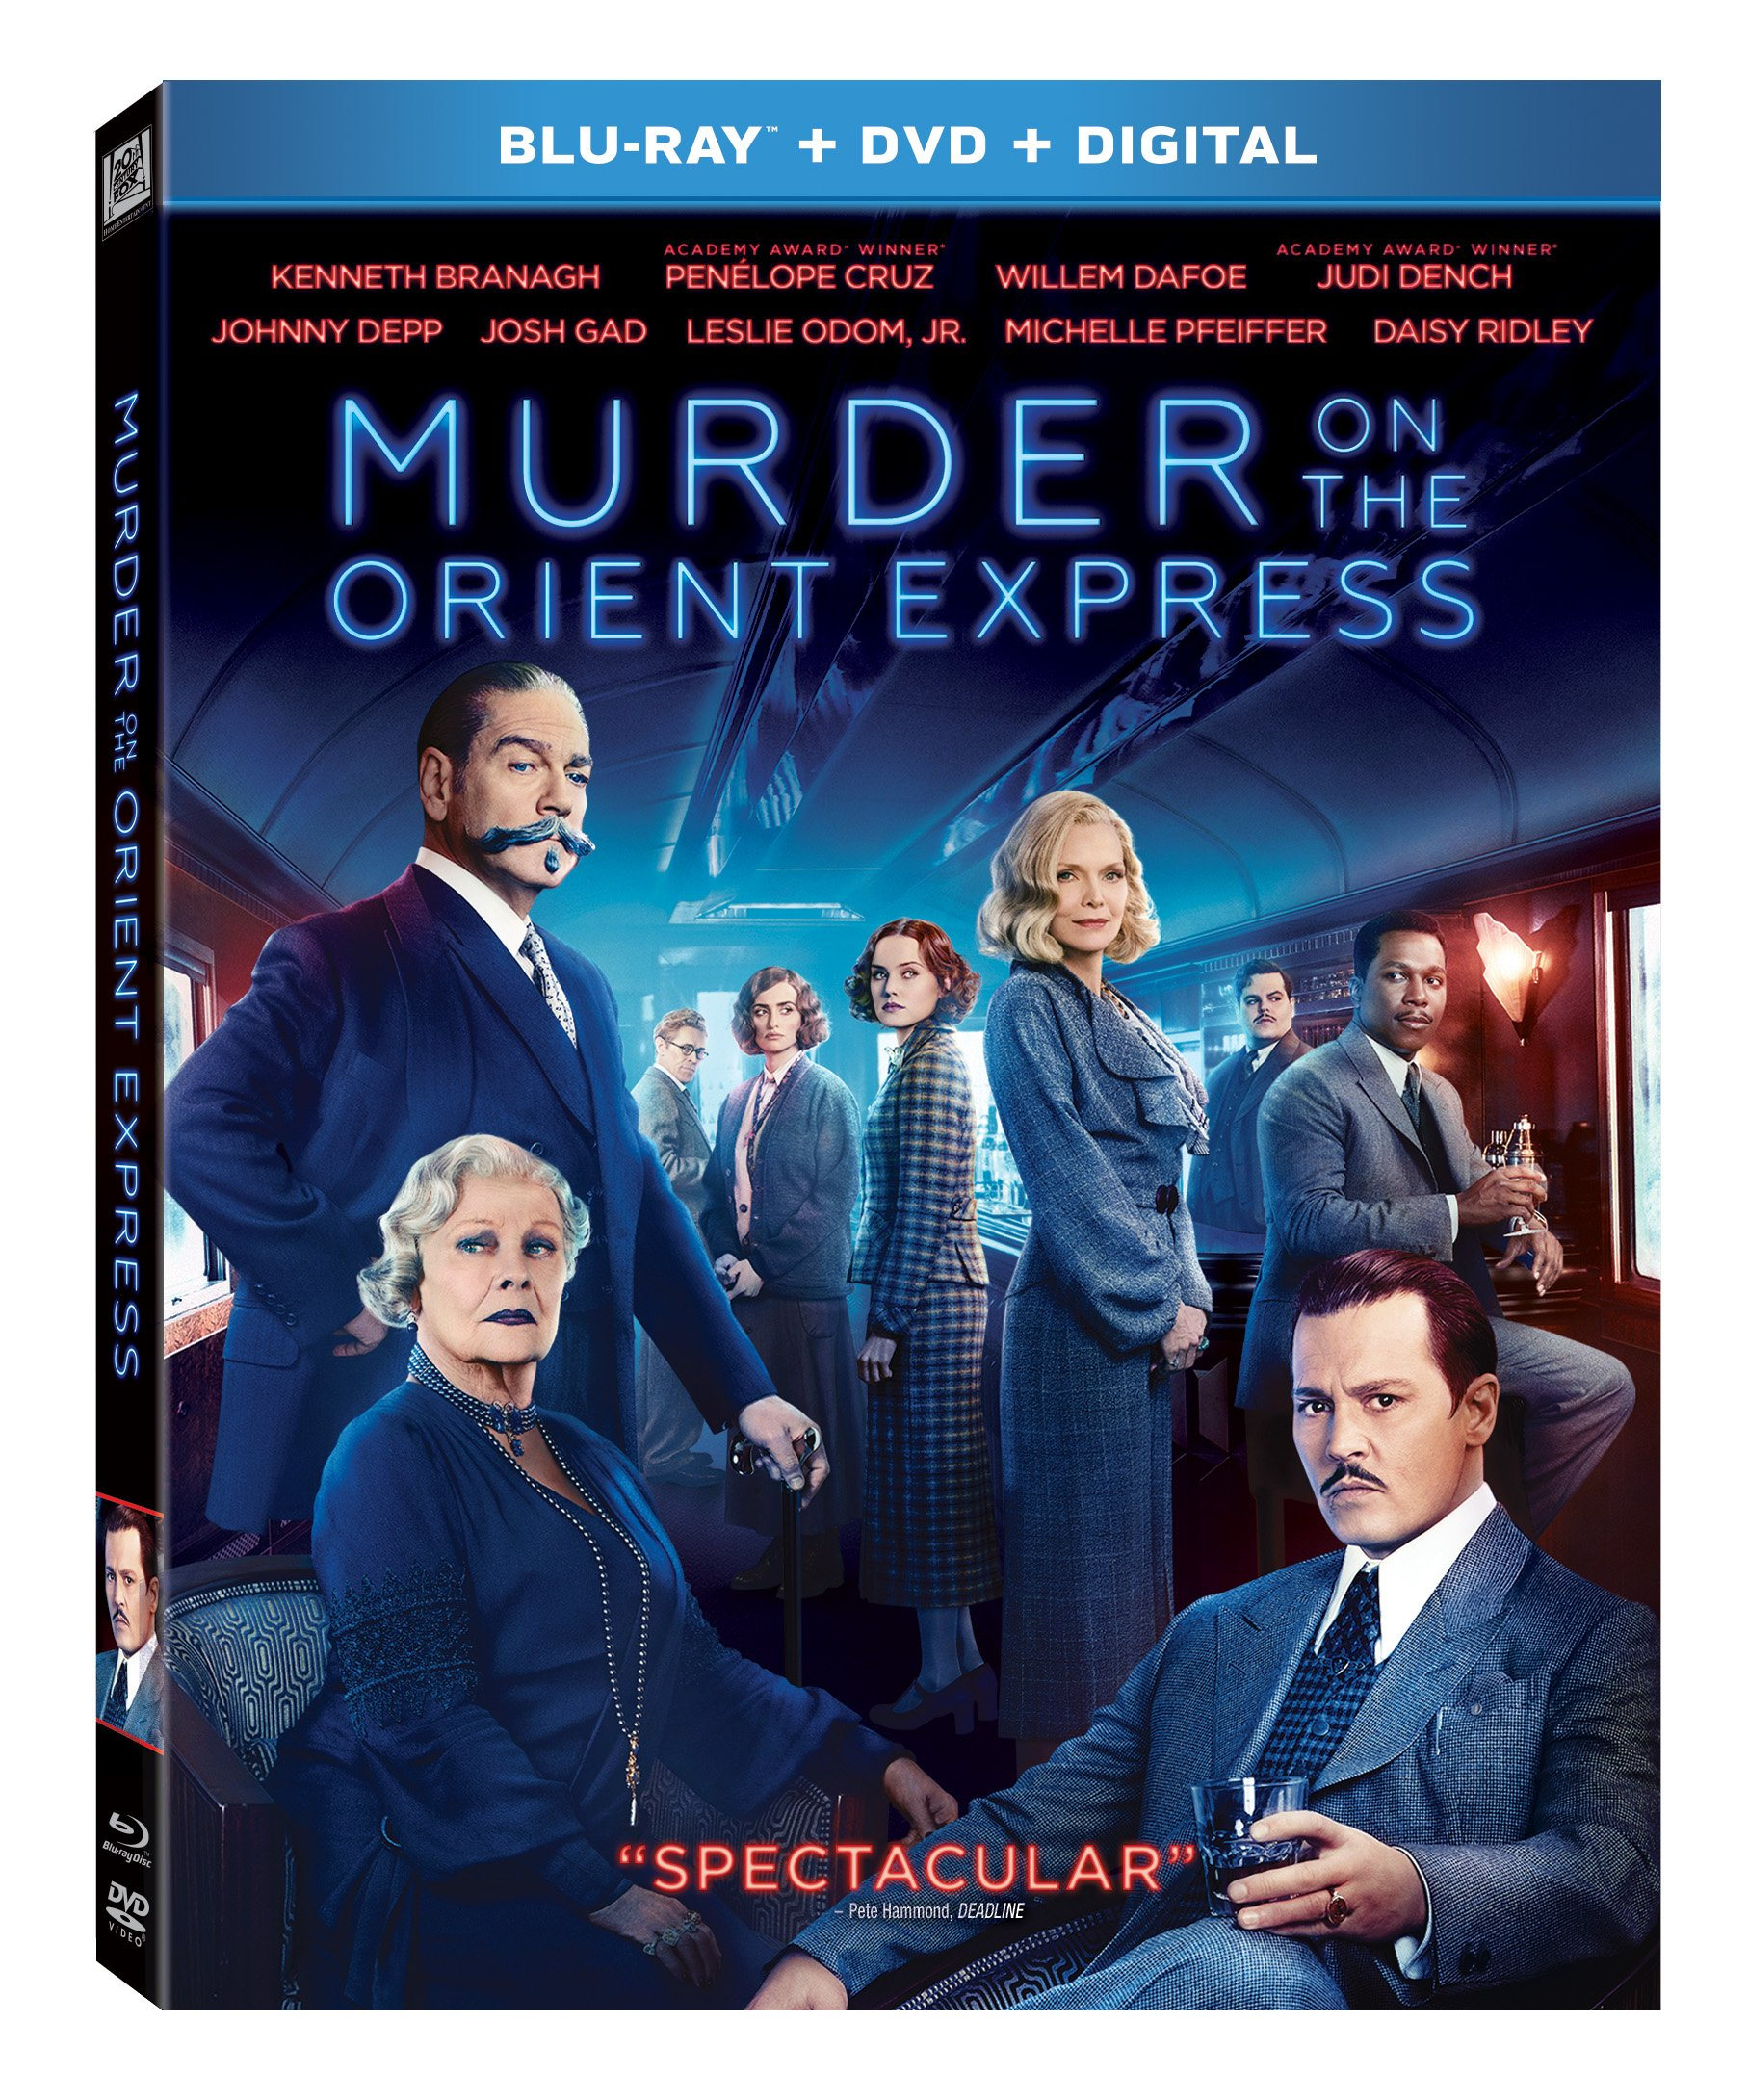 Blu-ray : Murder on the Orient Express (With DVD, Digital Copy, 2 Disc)